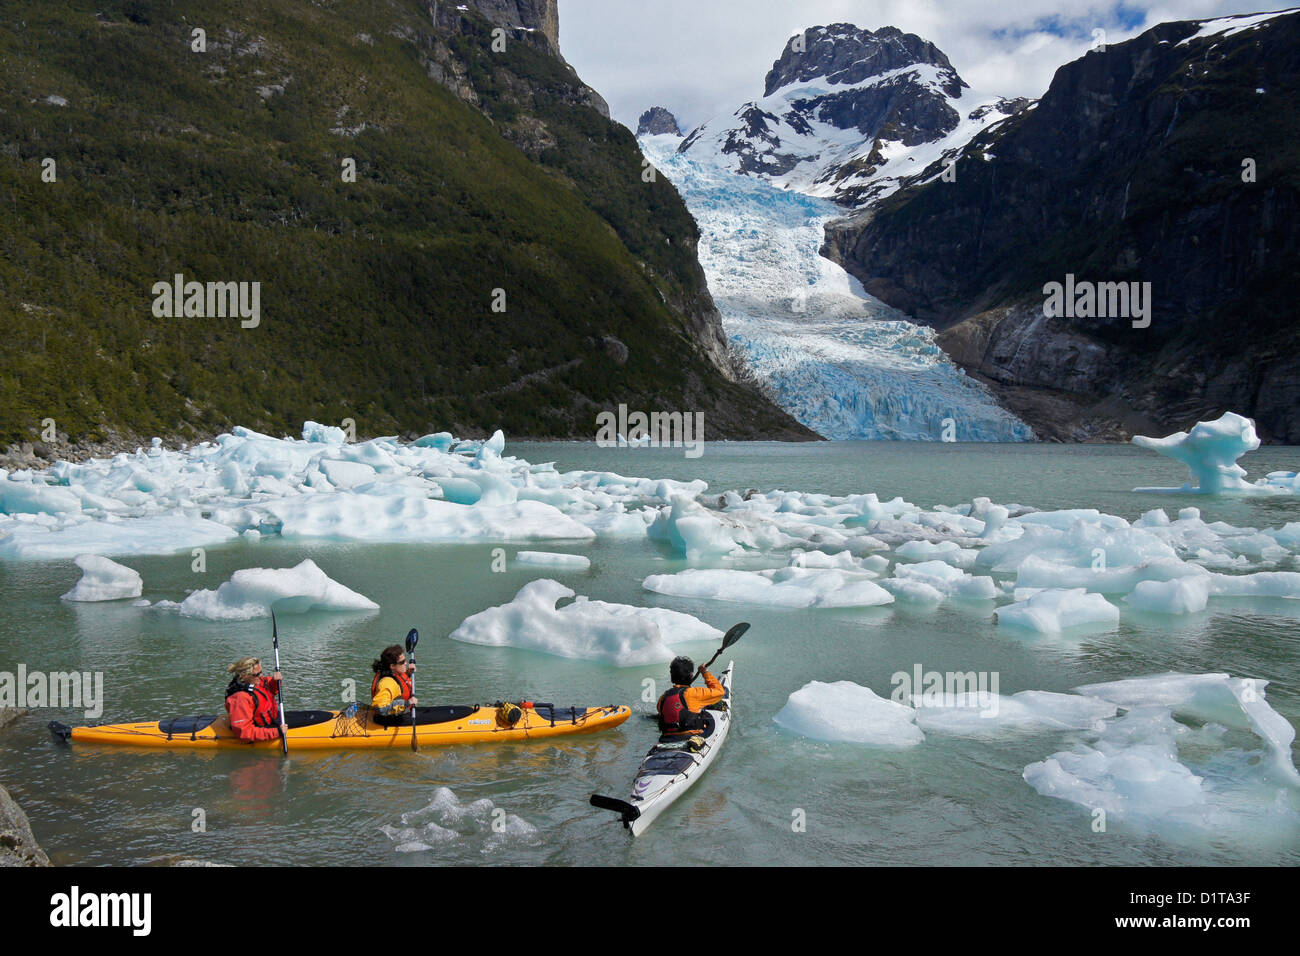 Kayakers at Serrano Glacier, Bernardo O'Higgins National Park, Patagonia, Chile - Stock Image